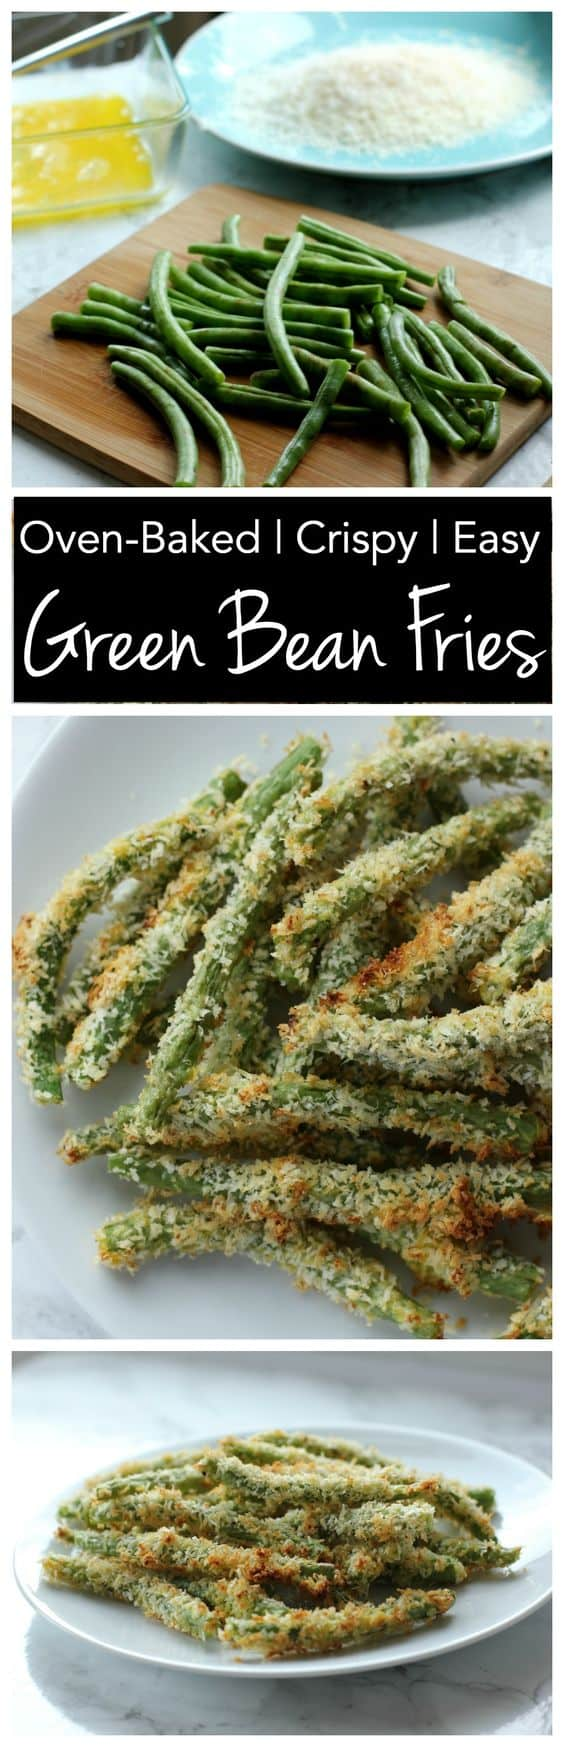 These crispy crunch green bean fries are baked in the oven so they're low in fat! Perfect for a healthy side dish!